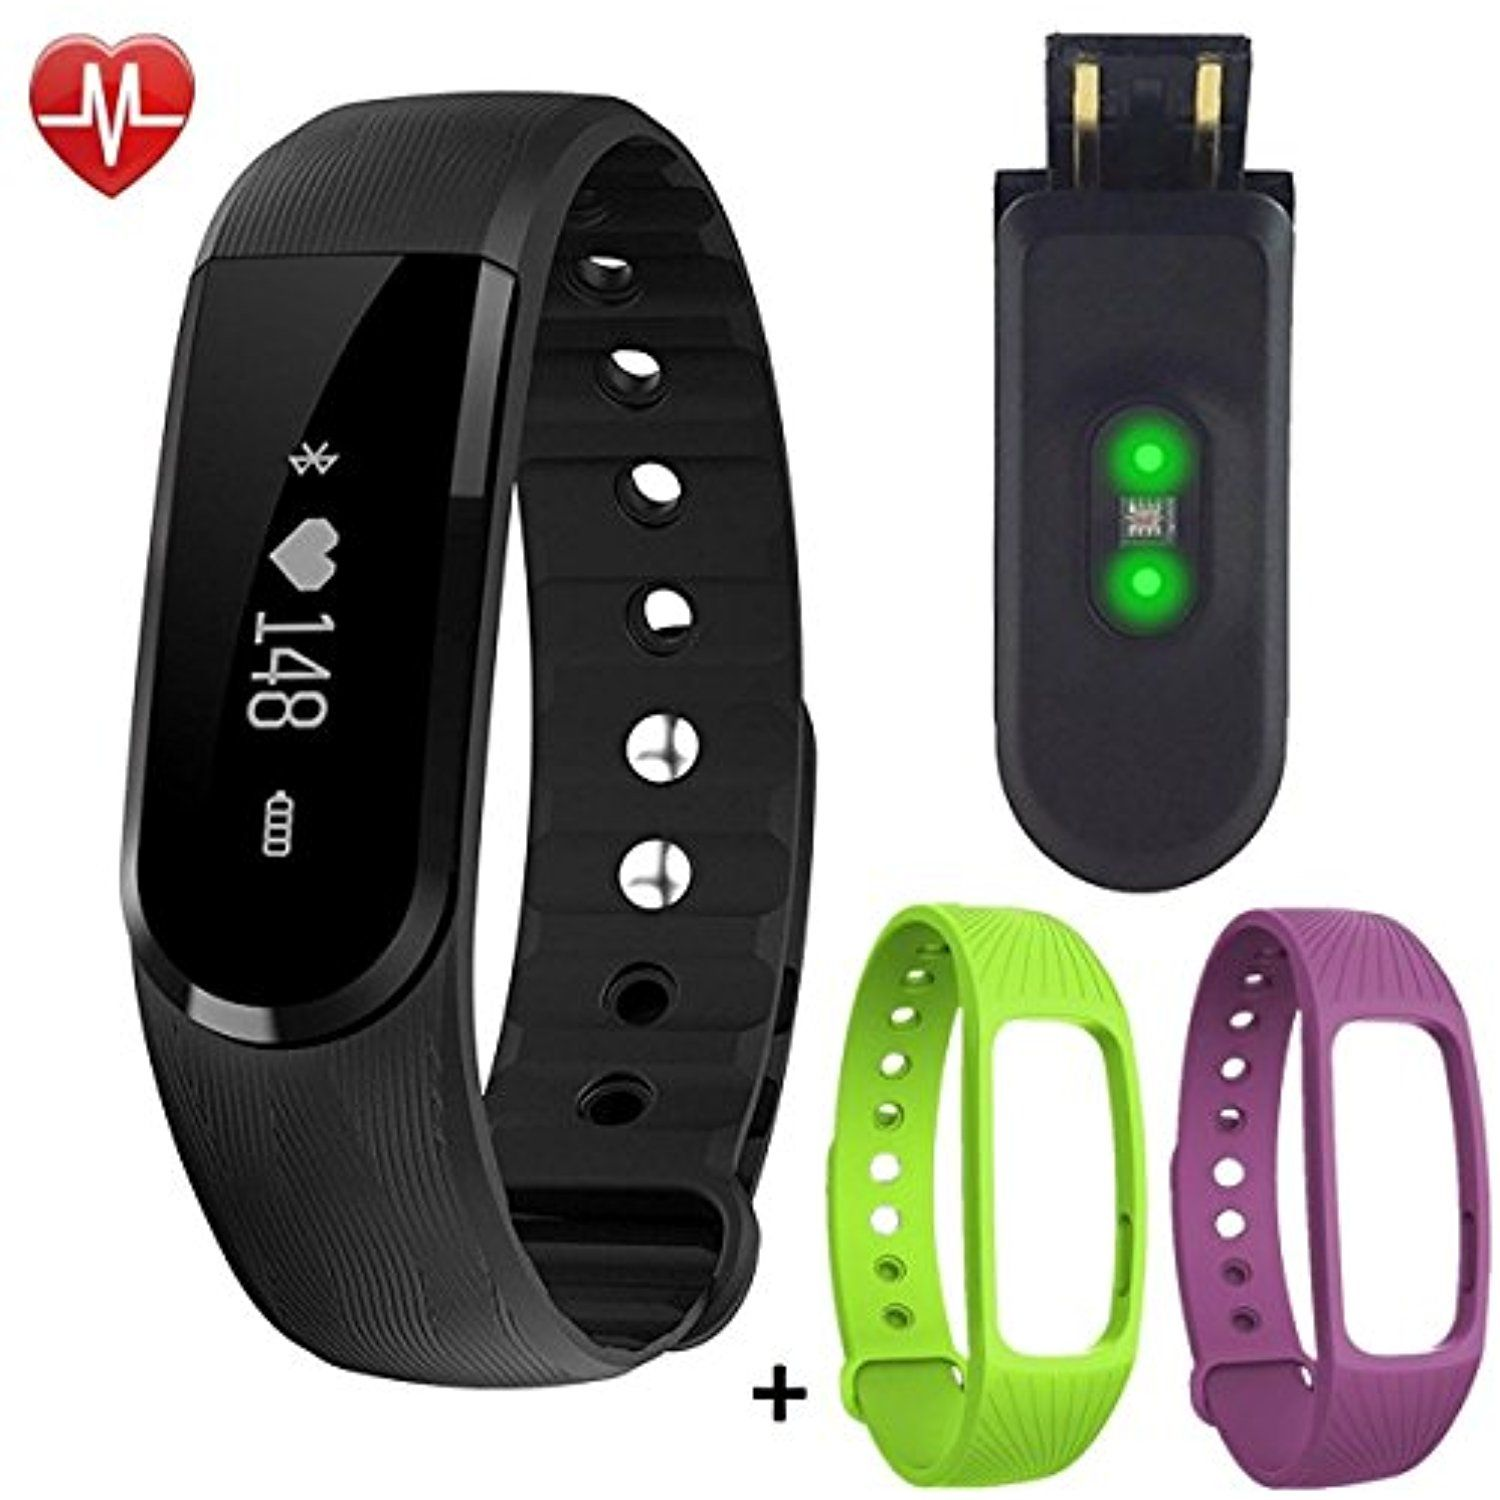 monitor calorie watch activity sleep with wristband compatible watches android itm smart sports pedometer iphone fitness bracelet tracker delvfire counter